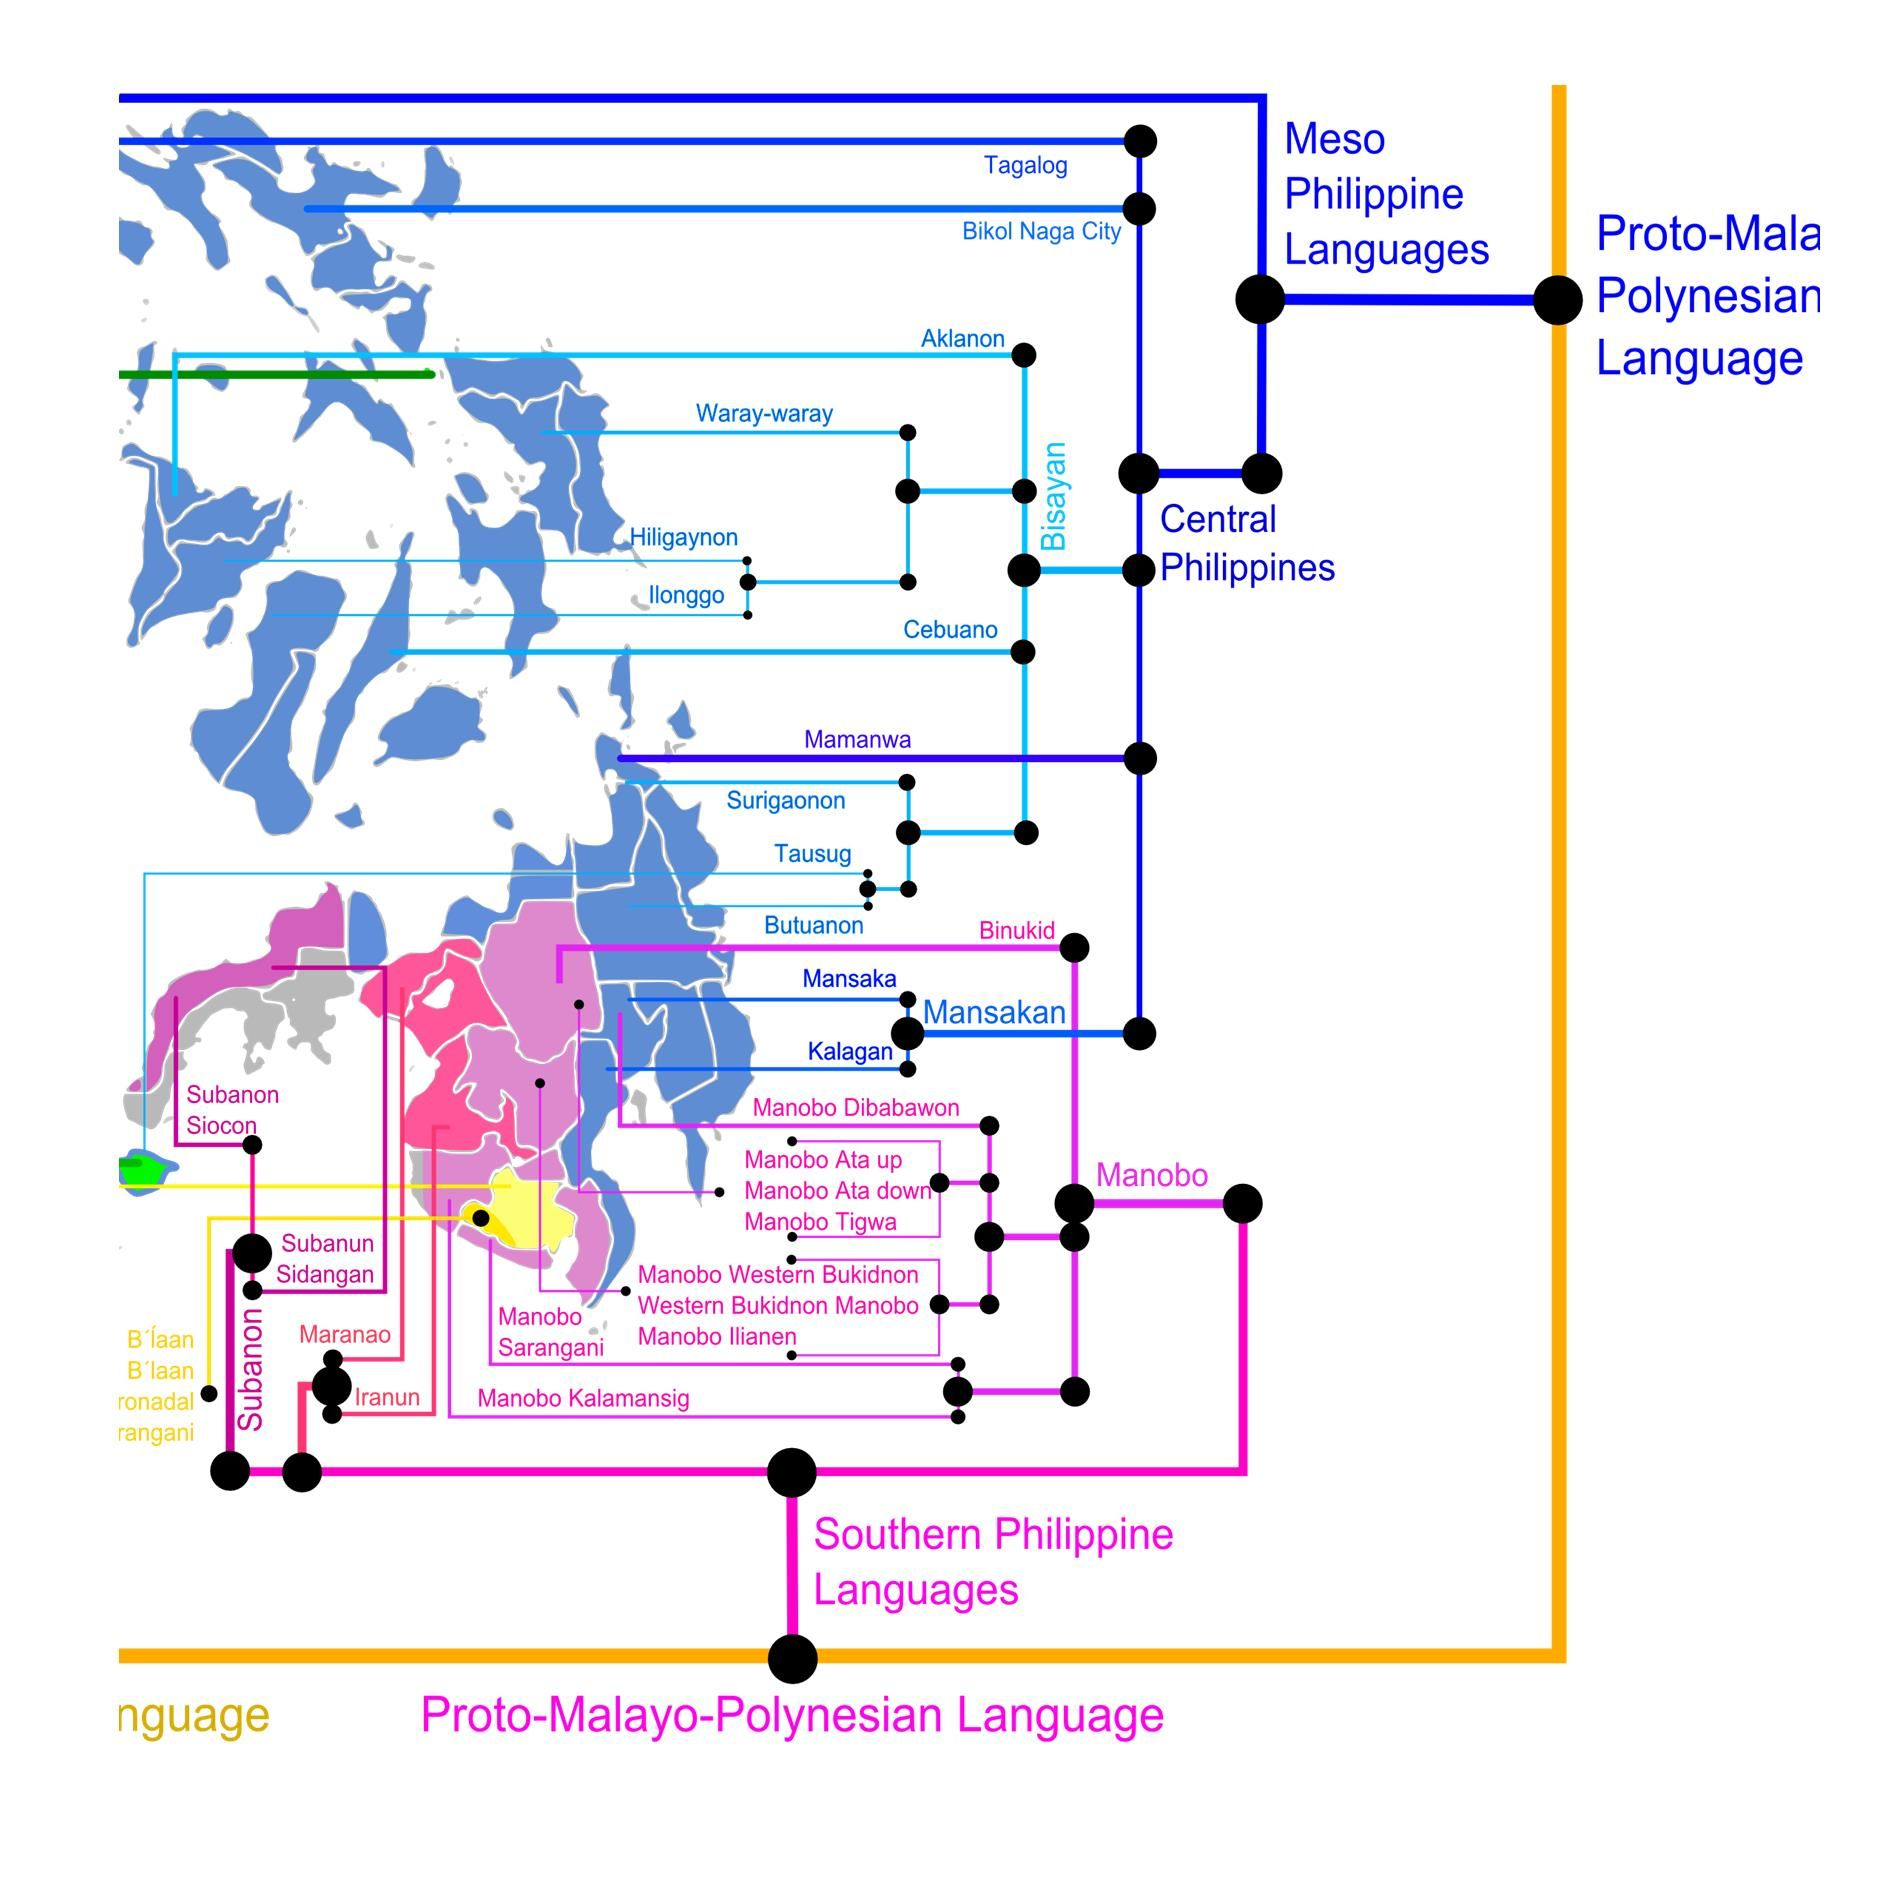 Philippine language relations in a map  Easter island and Philippines